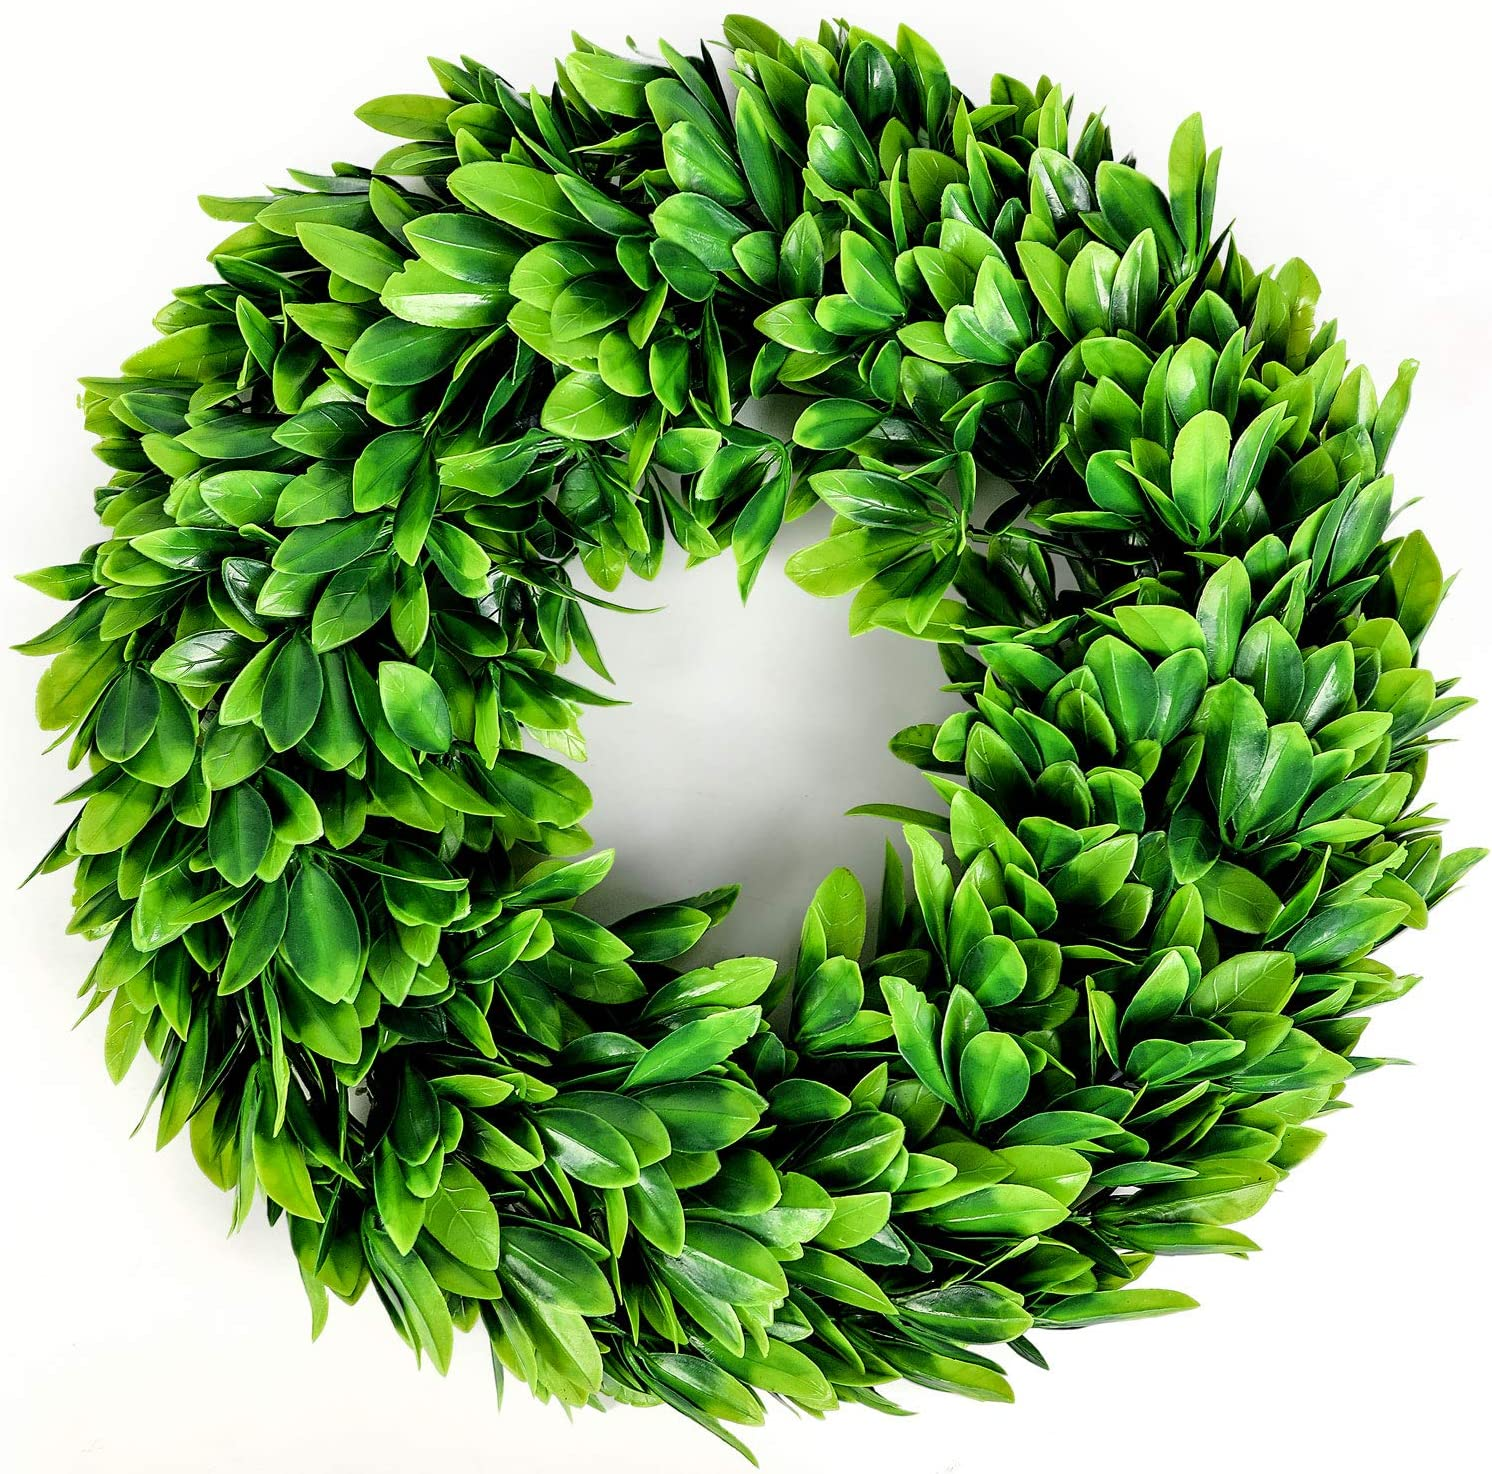 "Souarts 17"" Eucalyptus Wreath-Artificial Greenery Wreath Boxwood, Front Door Wreath for Indoor Outdoor Home Office Wall Wedding Holiday Decor"